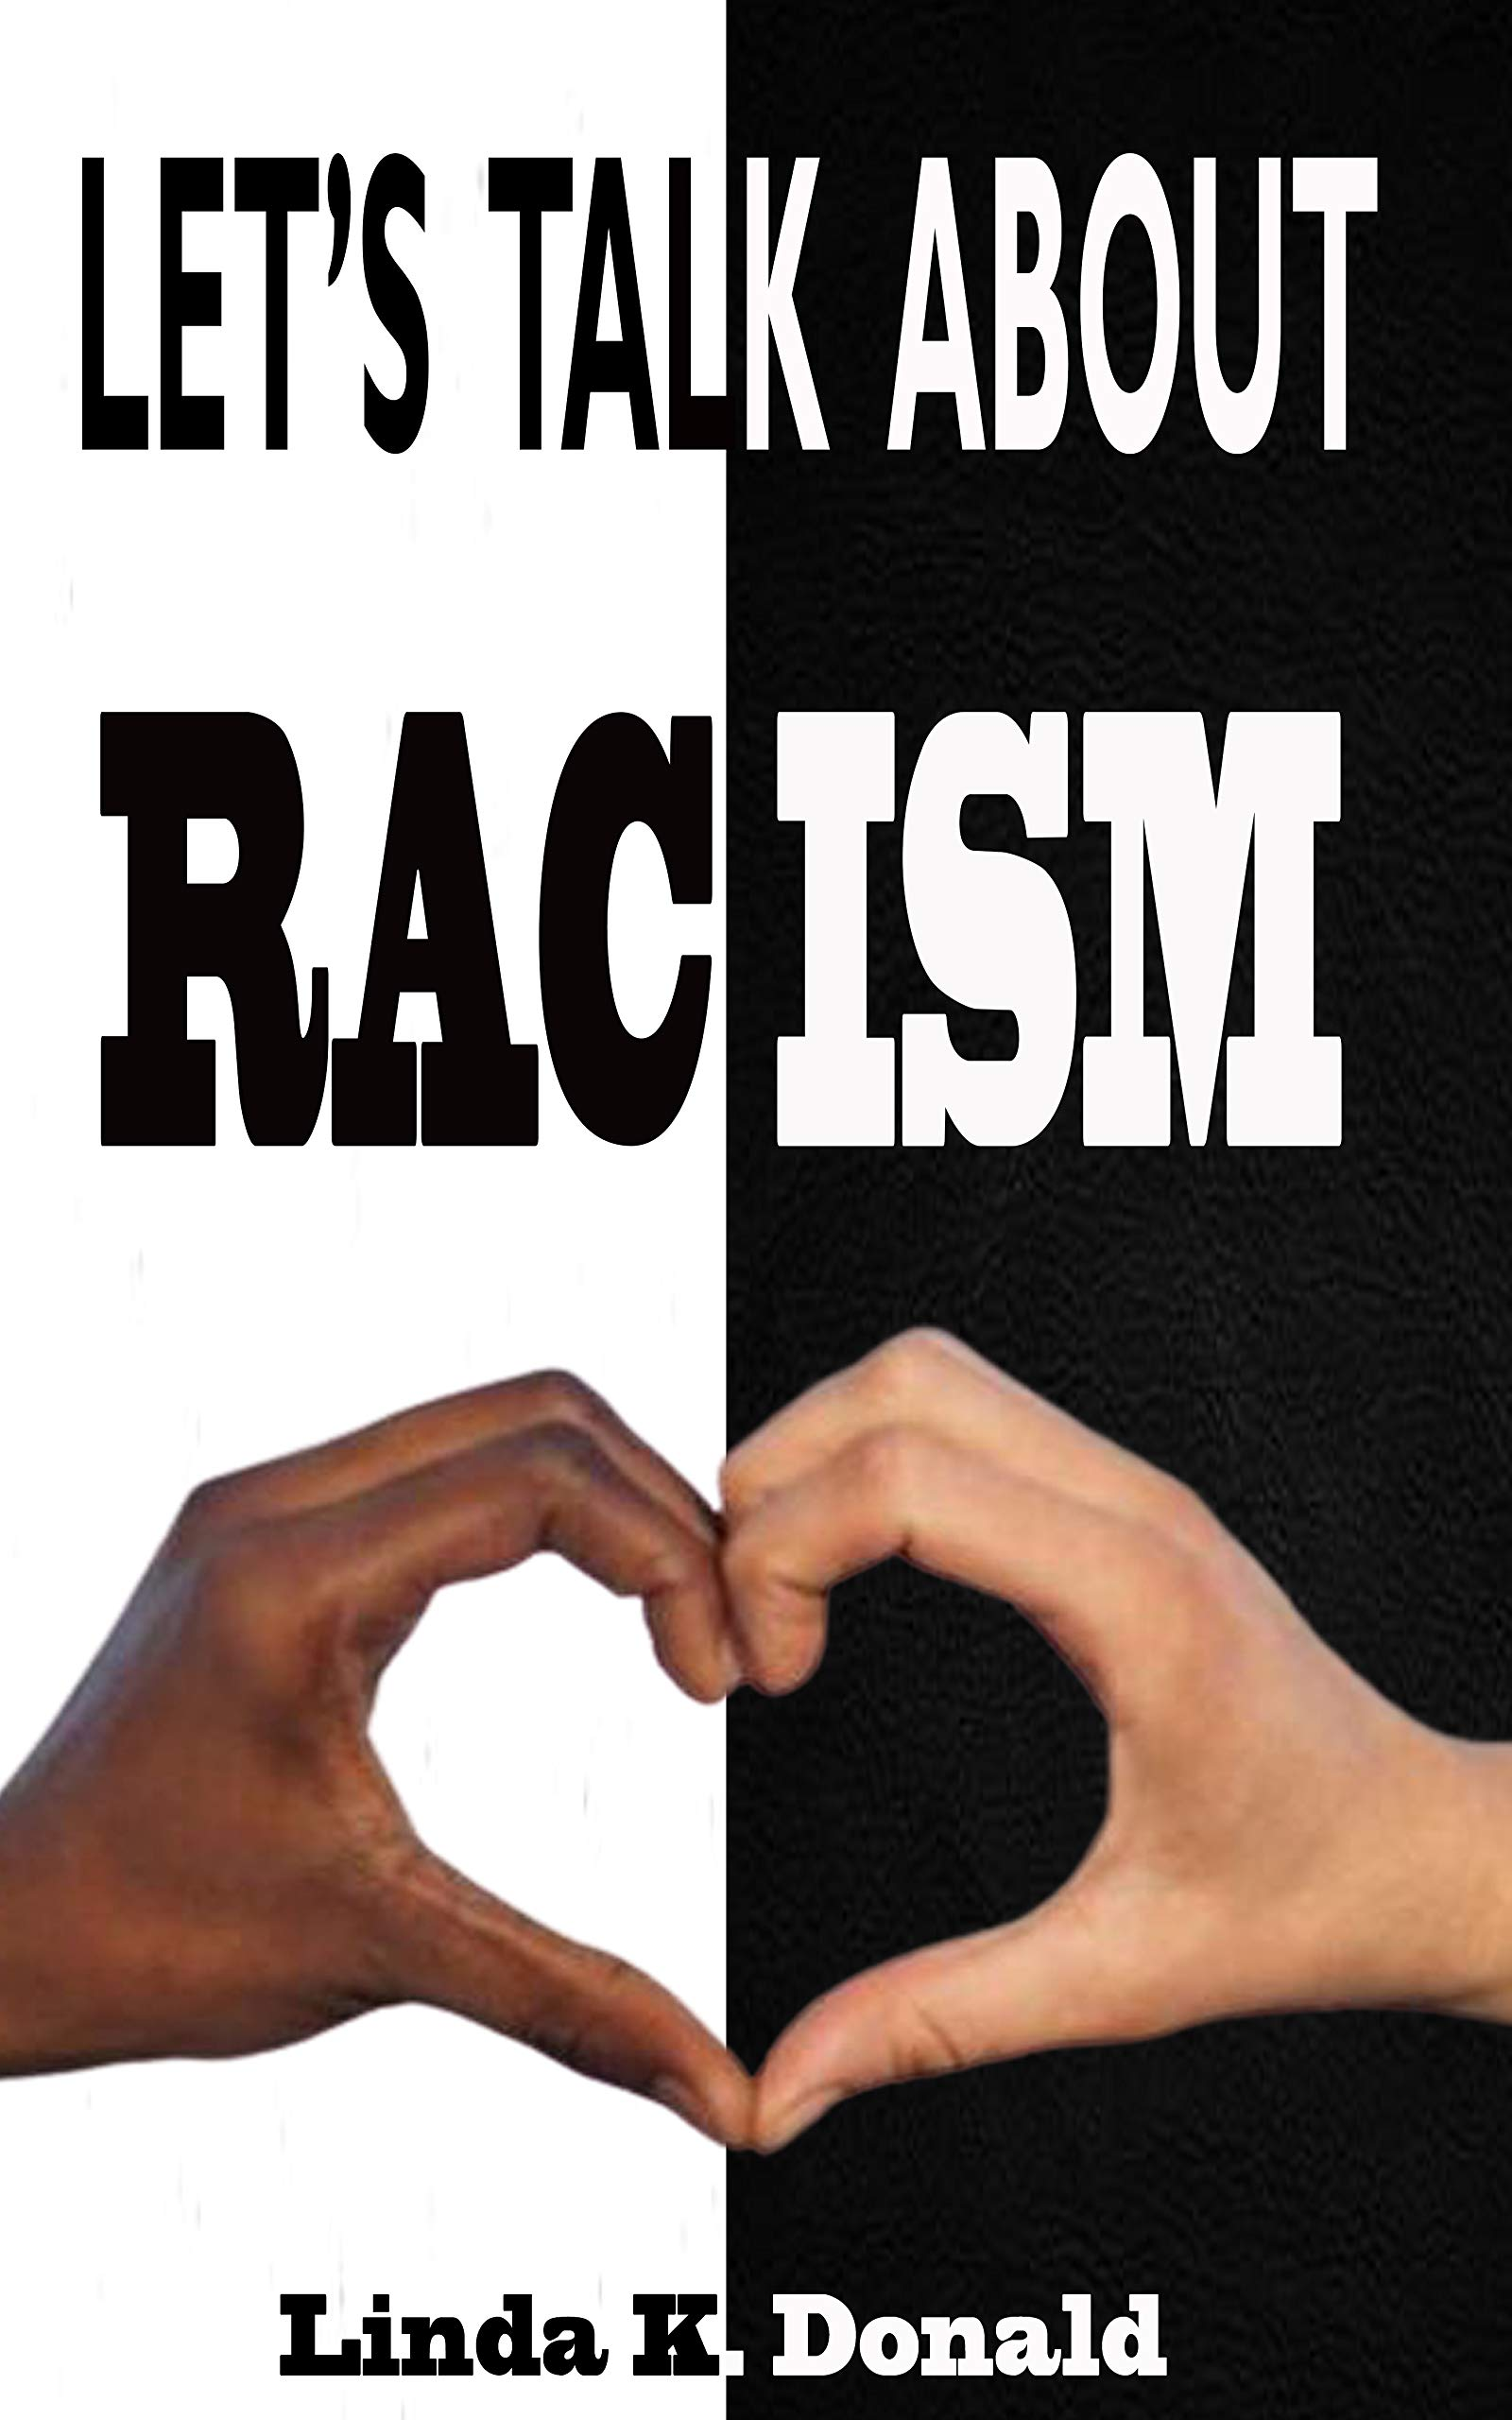 LET'S TALK ABOUT RACISM: A Call For Both Black And White To Talk About Antiracist Ideas And Teach Our Kids To Understand How To Treat Other Race And Uproot Racism In America